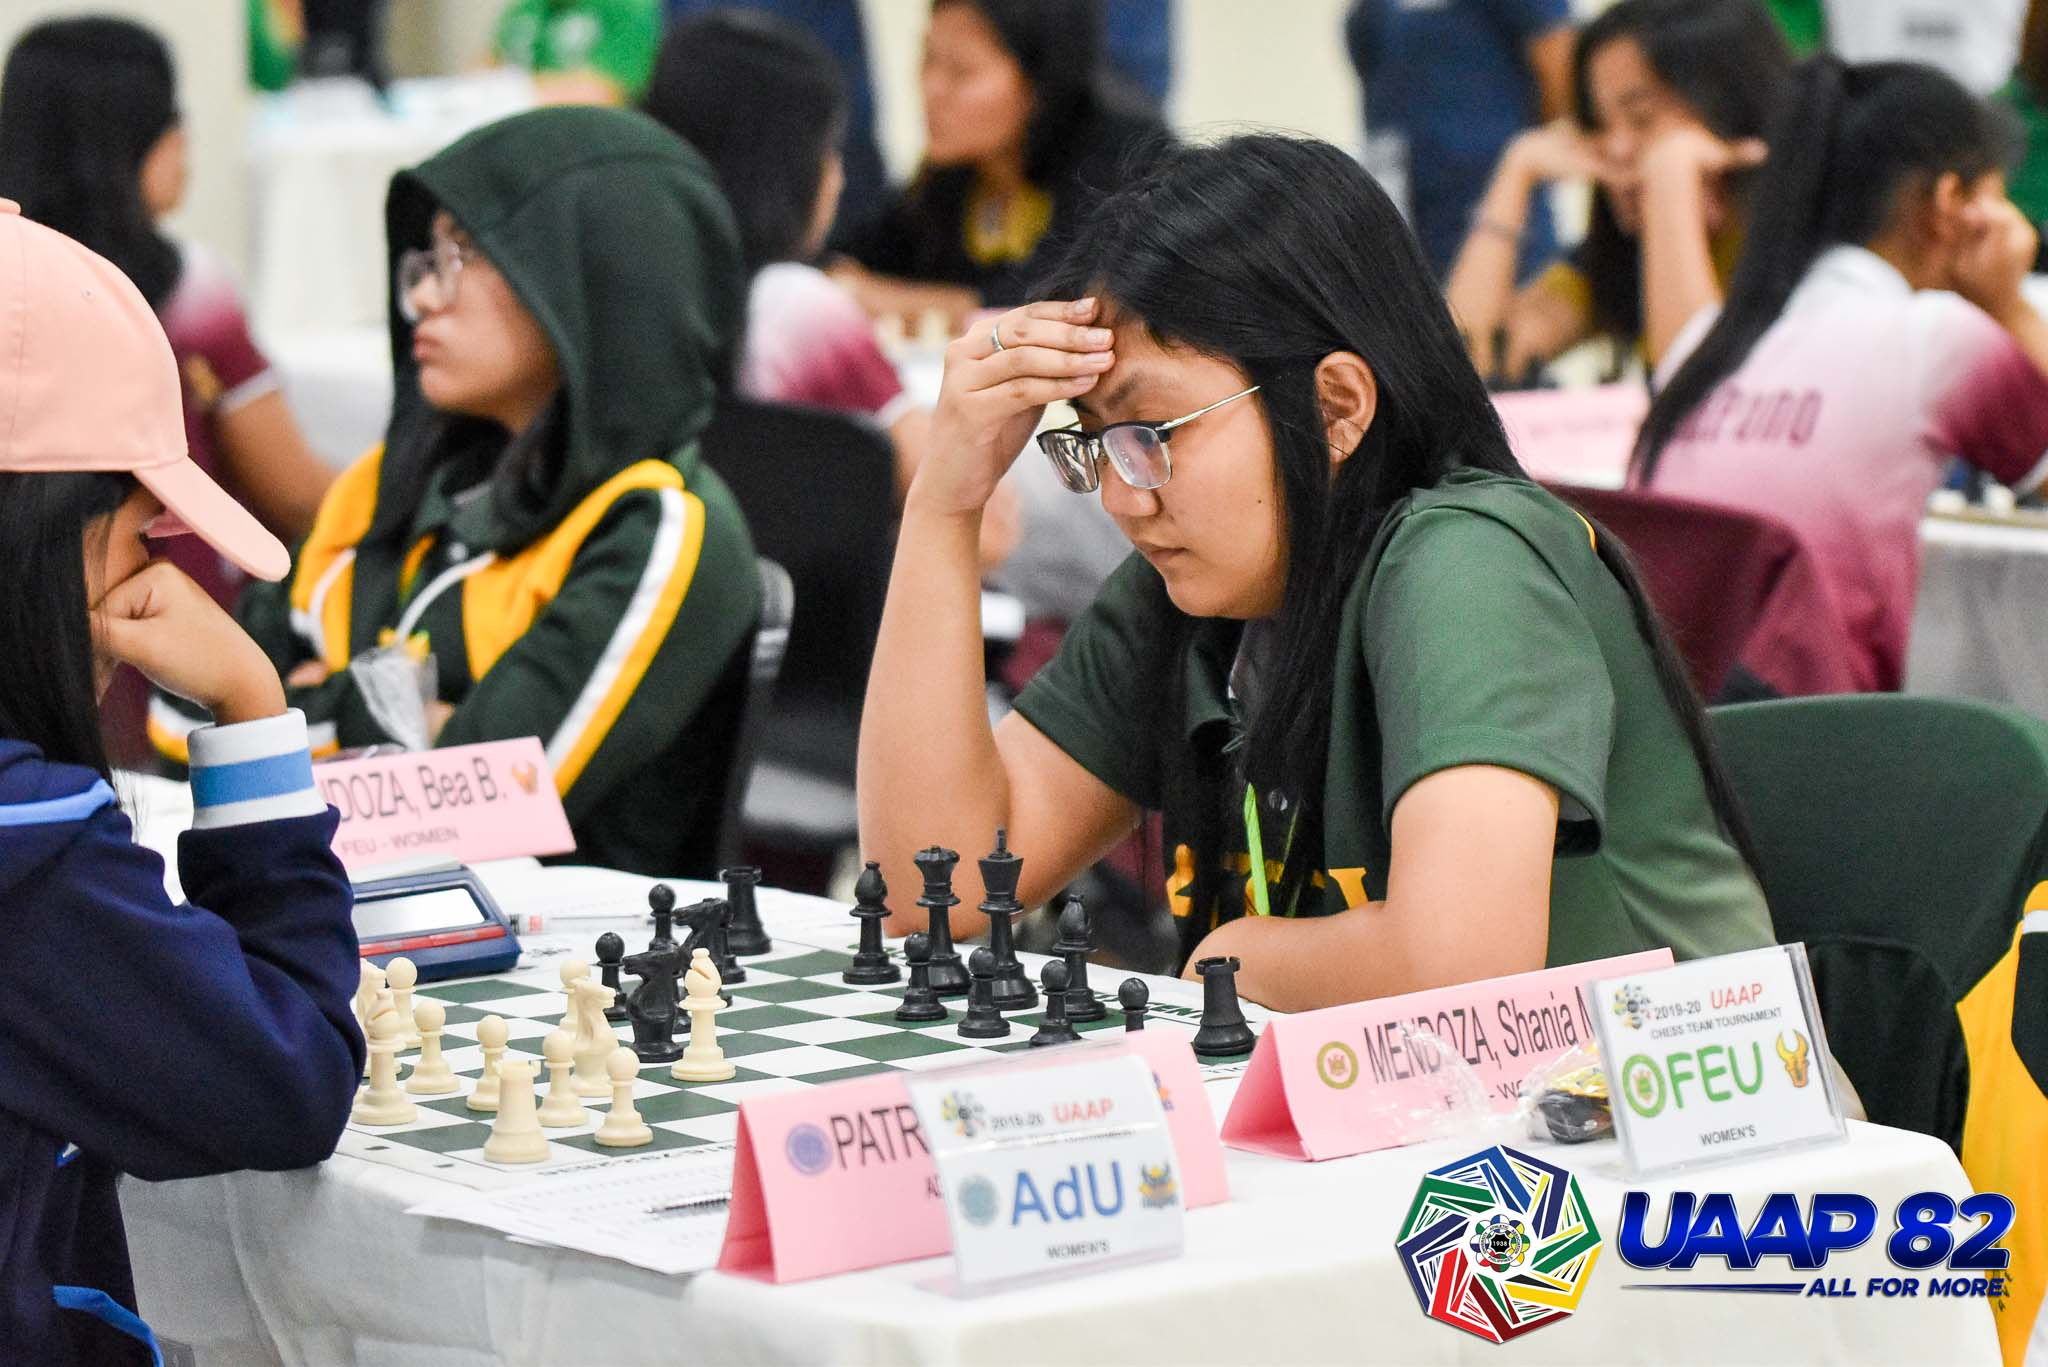 Tiebreaker Times FEU holds way, La Salle inches closer in UAAP Women's Chess ADMU AdU Chess DLSU FEU News NU UAAP UE UP UST  Viona Nepascua UST Women's Chess UP Women's Chess UAAP Season 82 Women's Chess UAAP Season 82 Shania Mae Mendoza Samantha Glo Revita NU Women's Chess Marie Antoinette San Diego Manilyn Cabungcag Jennina Valdez Jallen Herzchelle Agra Franchell Eds Javier FEU Women's Chess Ella Grace Moulic DLSU Women's Chess Bea Mendoza Ateneo Women's Chess Adamson Women's Chess Abigail Tamundong